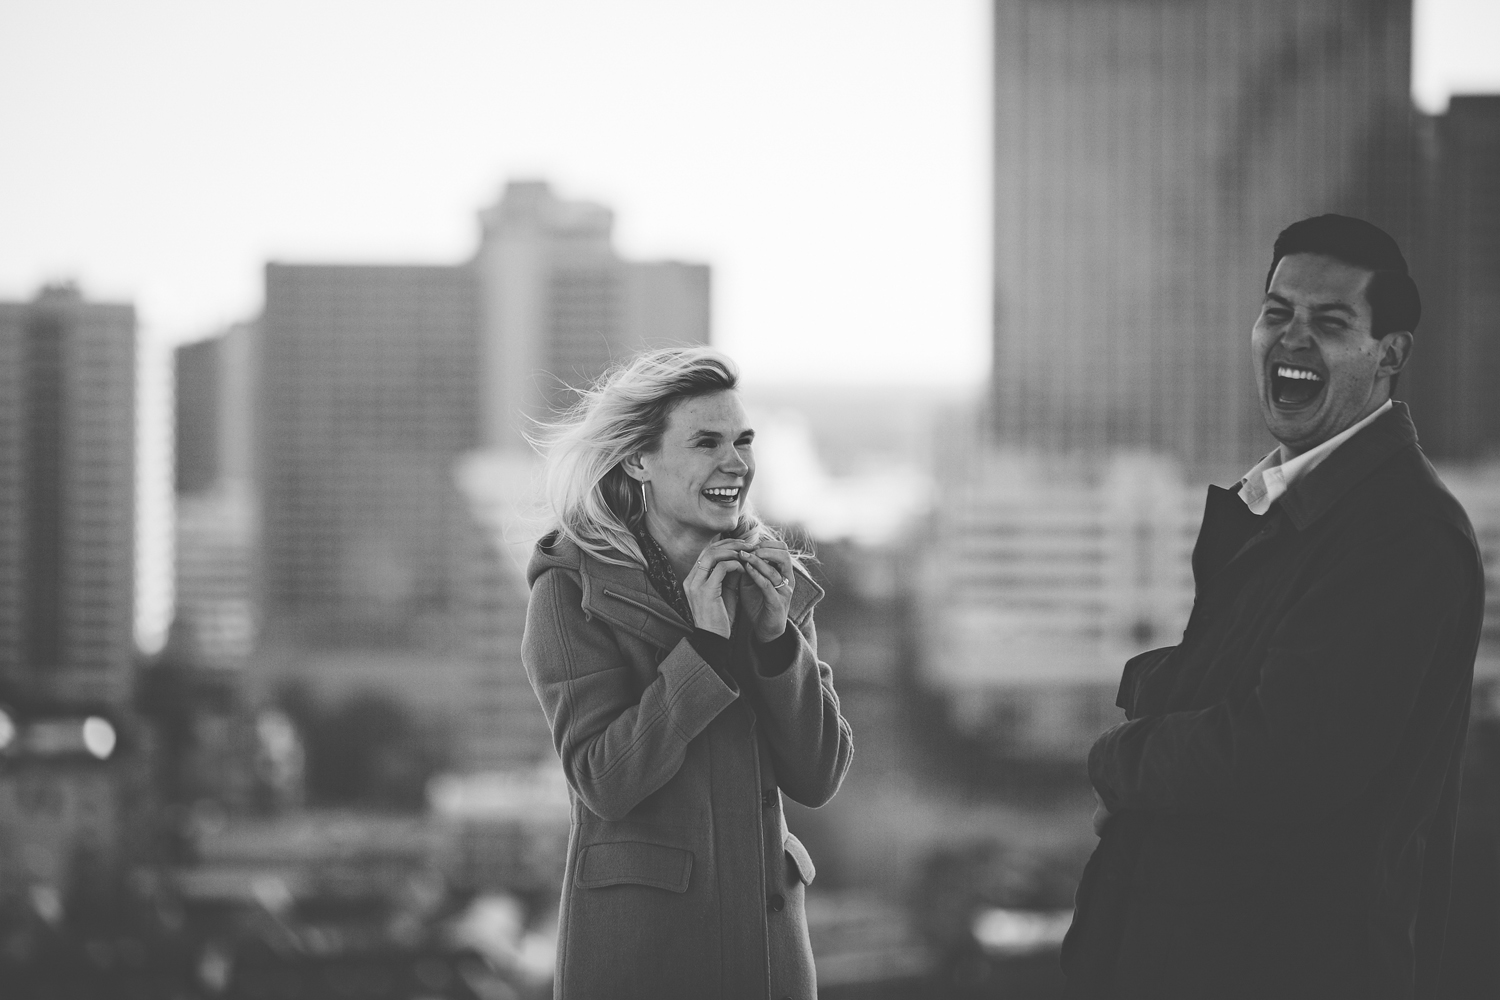 KDP_claire&drew - the proposal-46.jpg